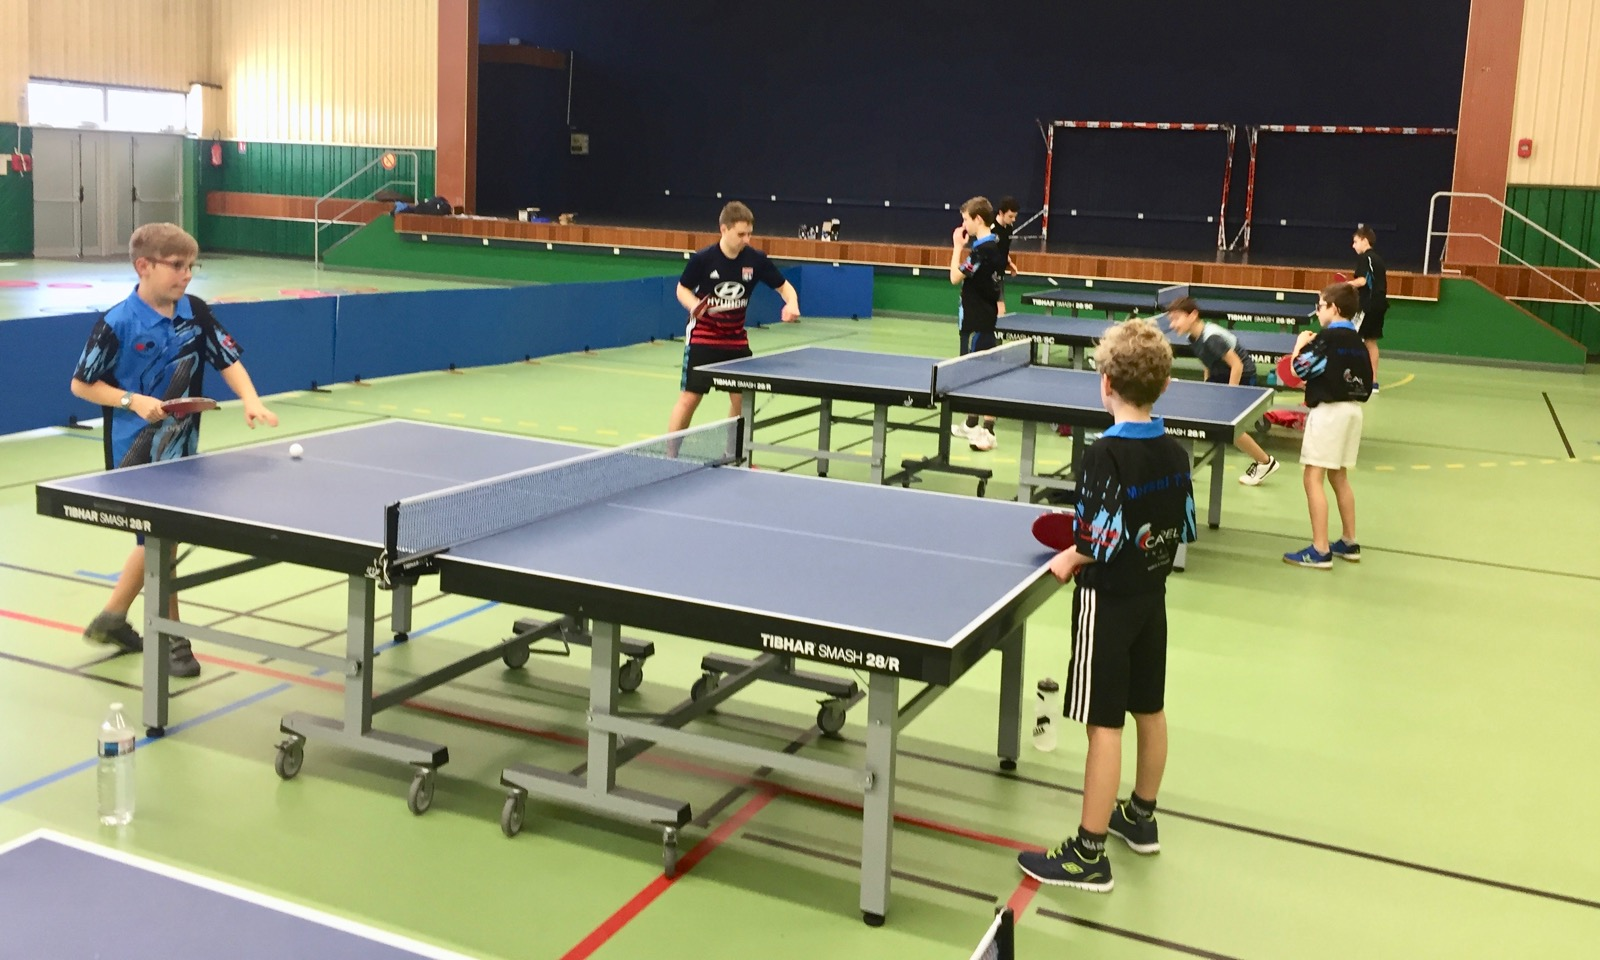 Morestel Tennis de table